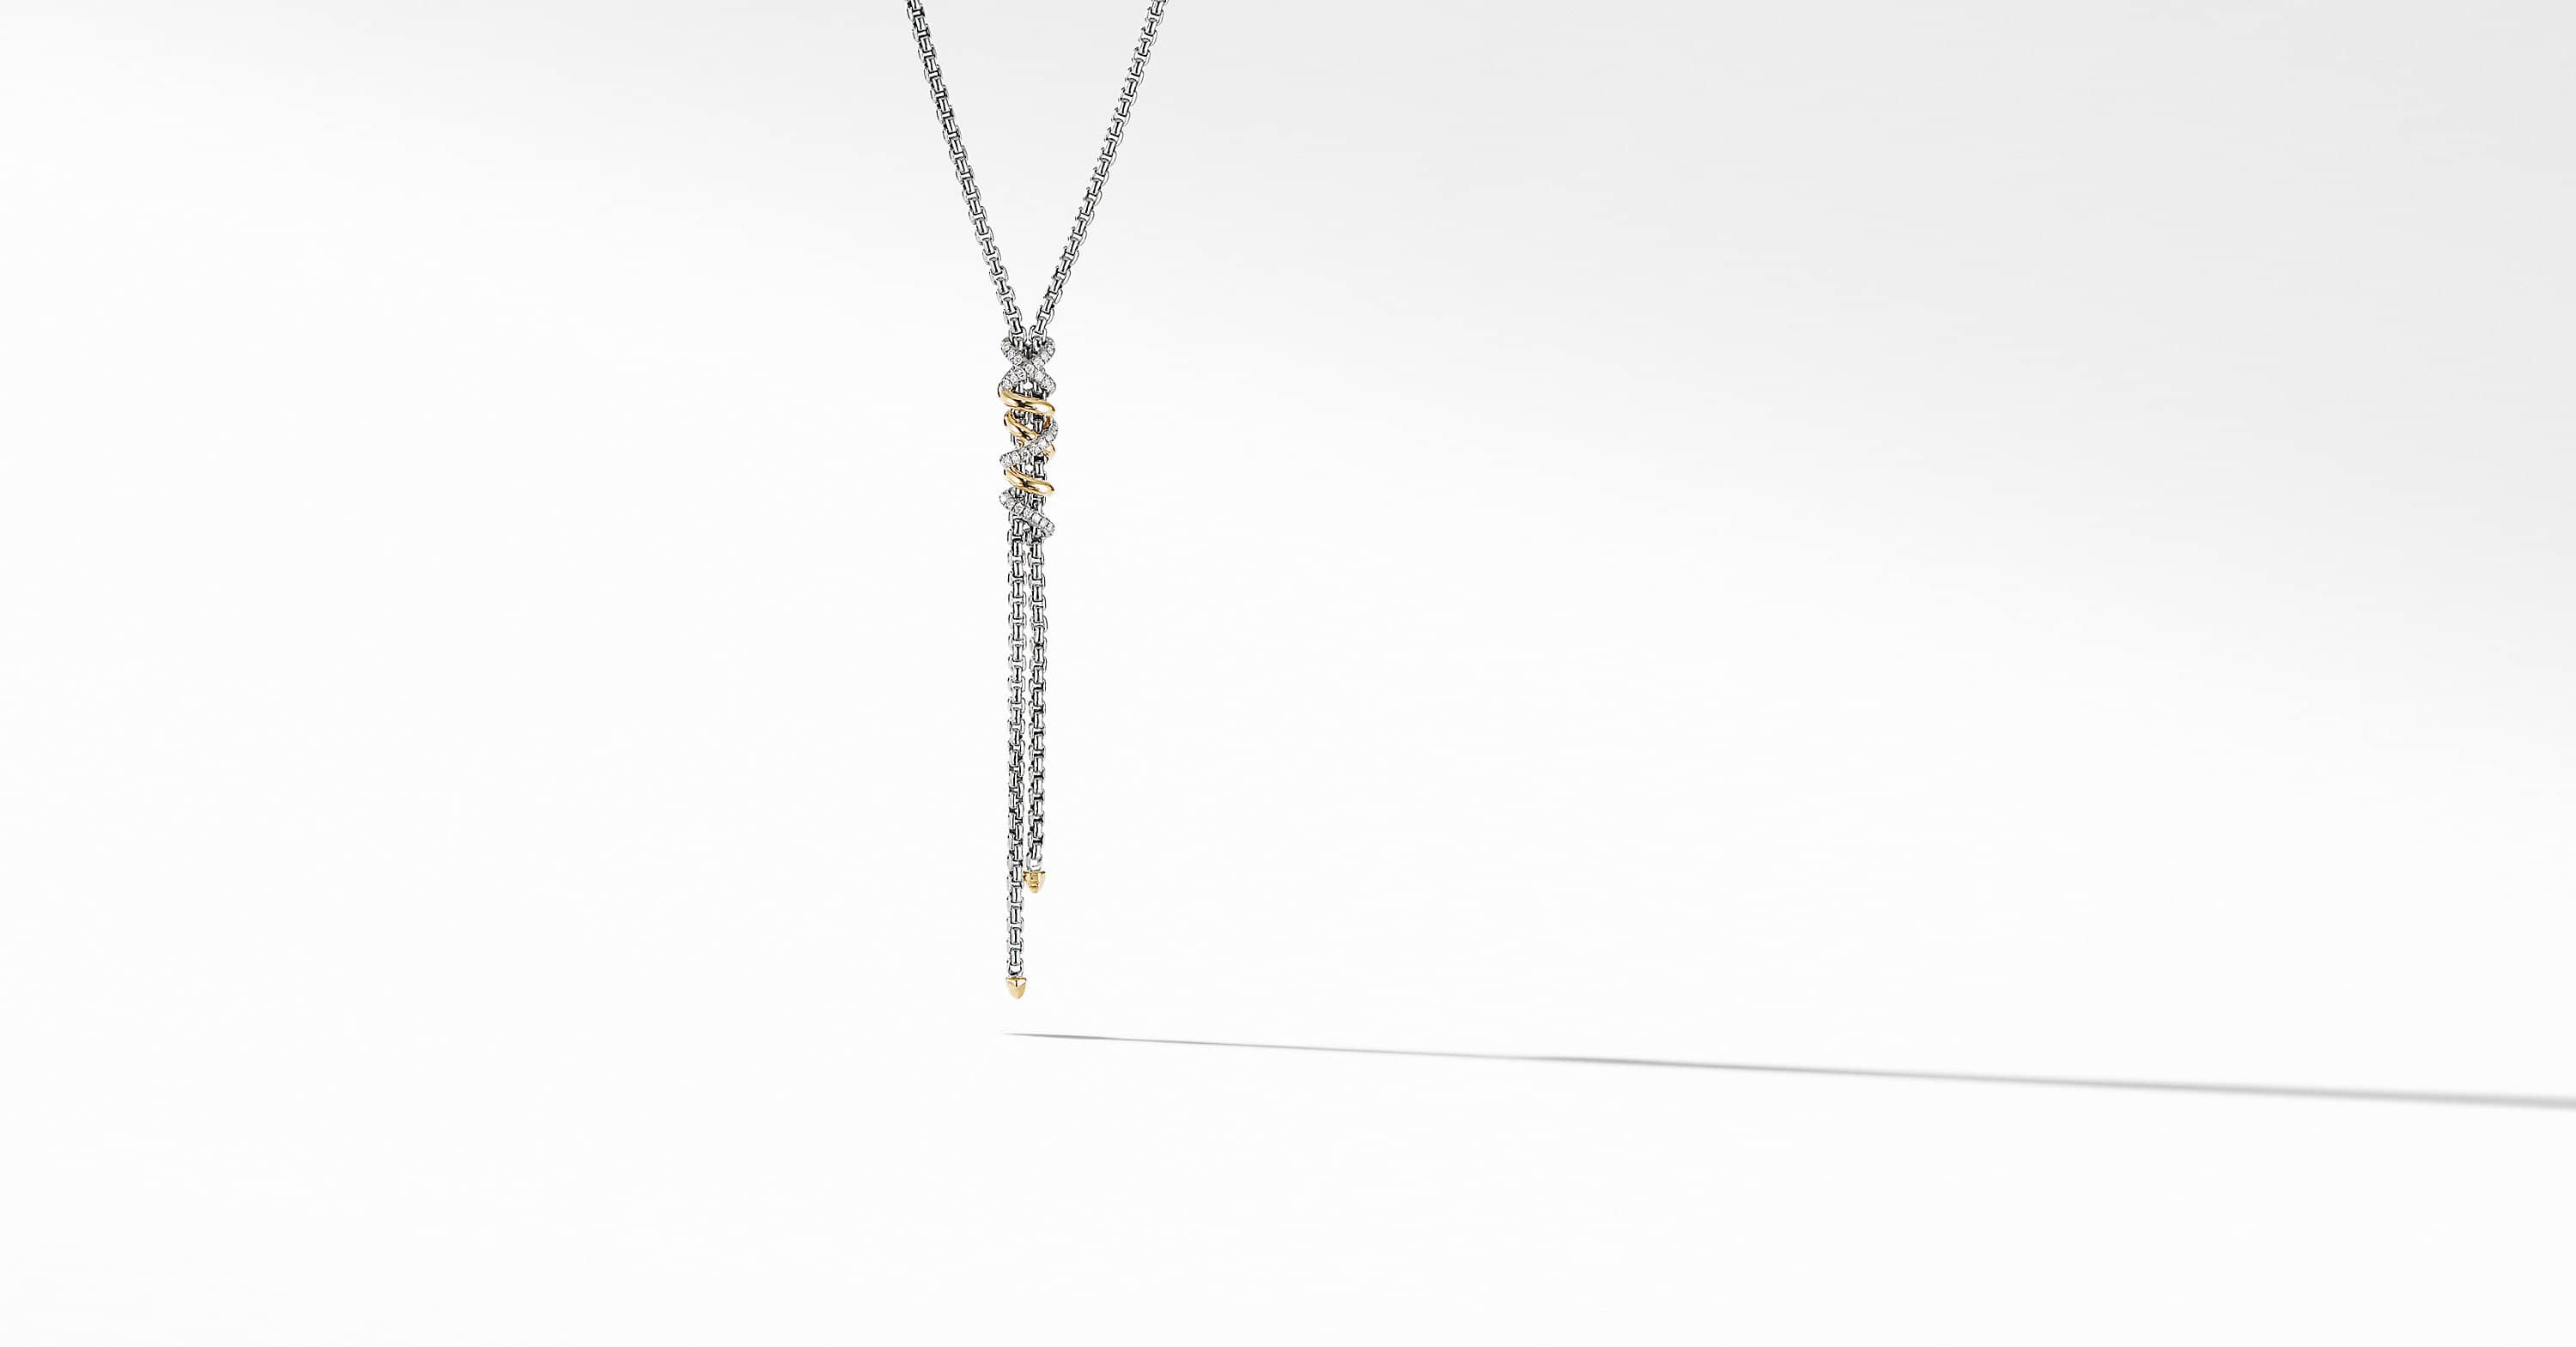 fb86c593a66557 Helena Y Necklace with 18K Yellow Gold with Diamonds | David ...